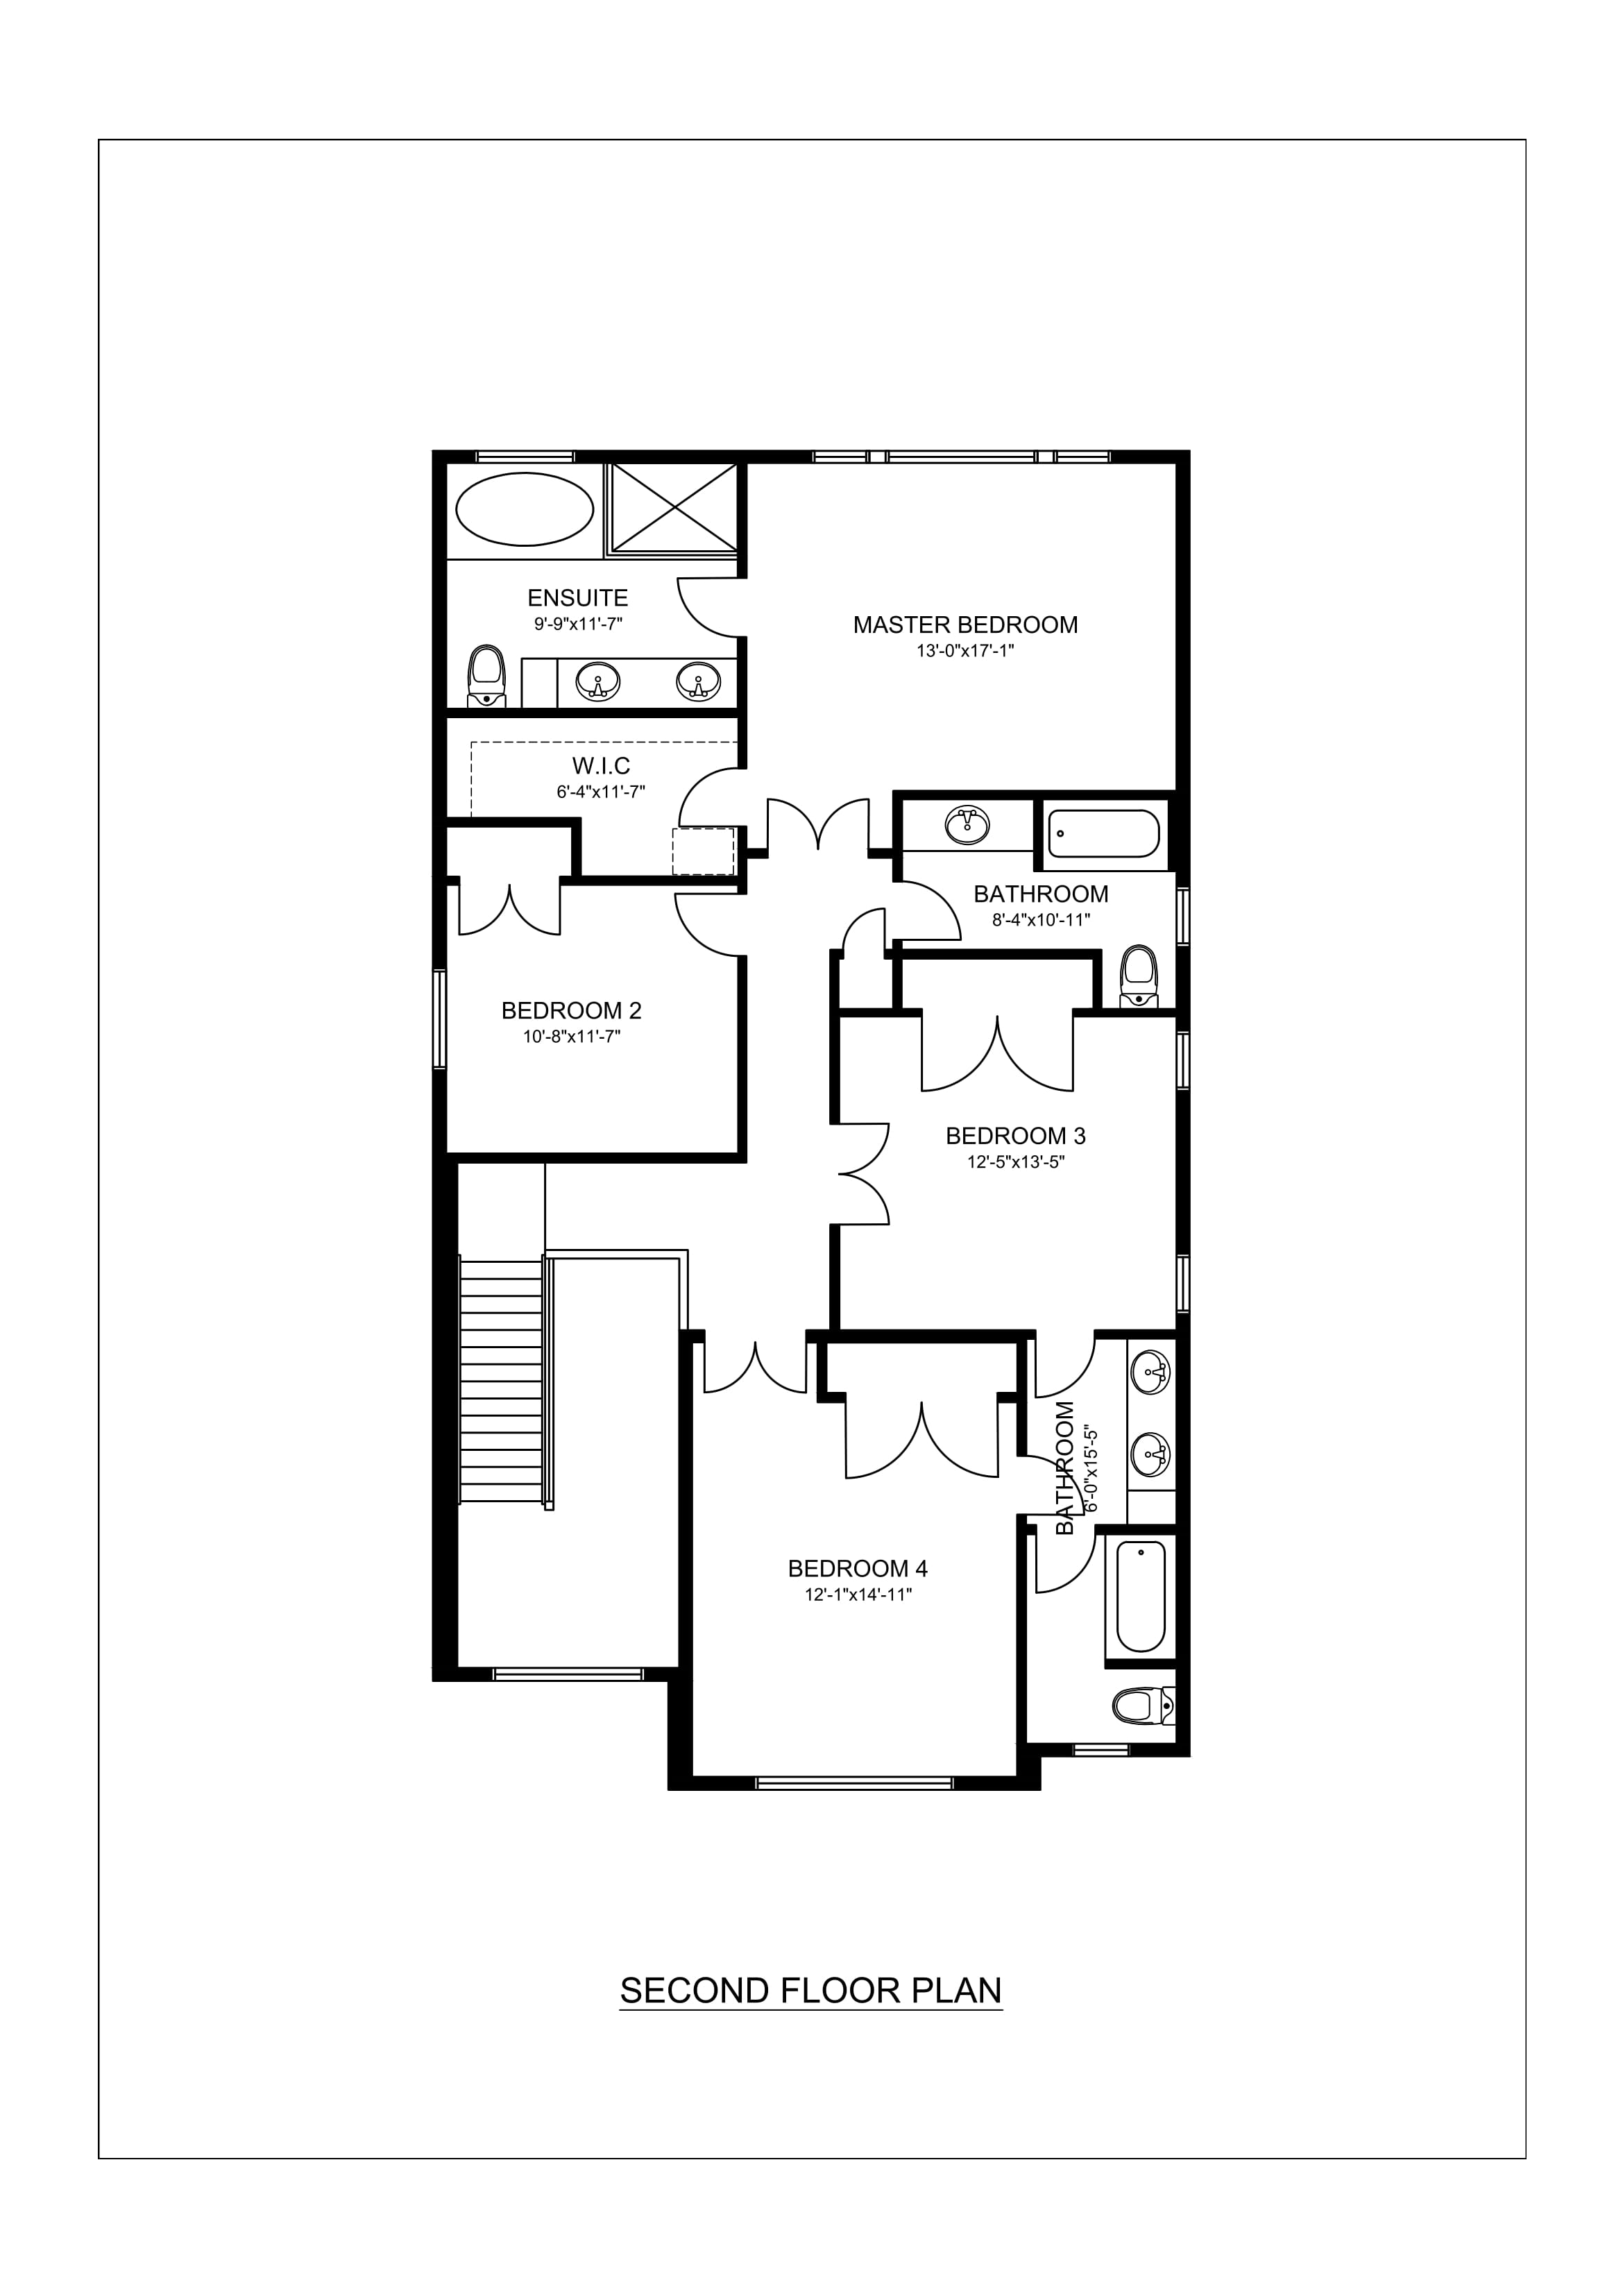 2d floor plan design rendering samples examples for Create my home floor plan